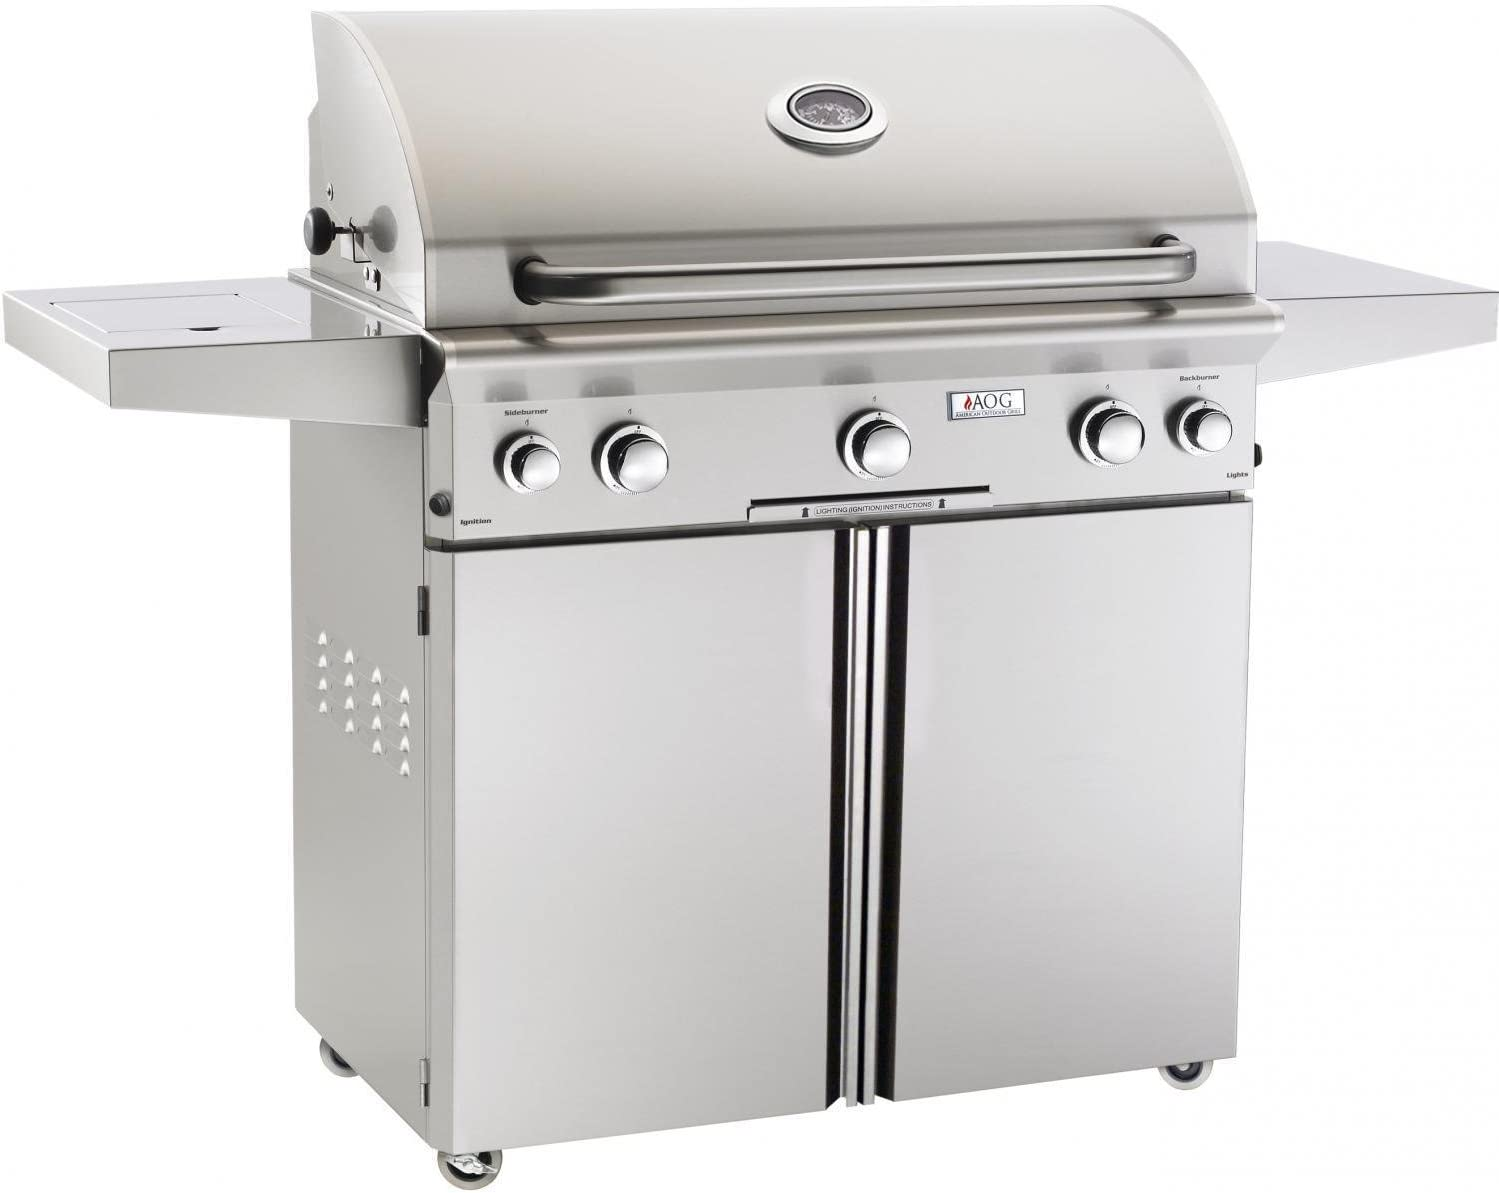 AOG American Outdoor Grill L-Series 36-Inch 3-Burner Propane Gas Grill W/Rotisserie & Single Side Burner - 36PCL